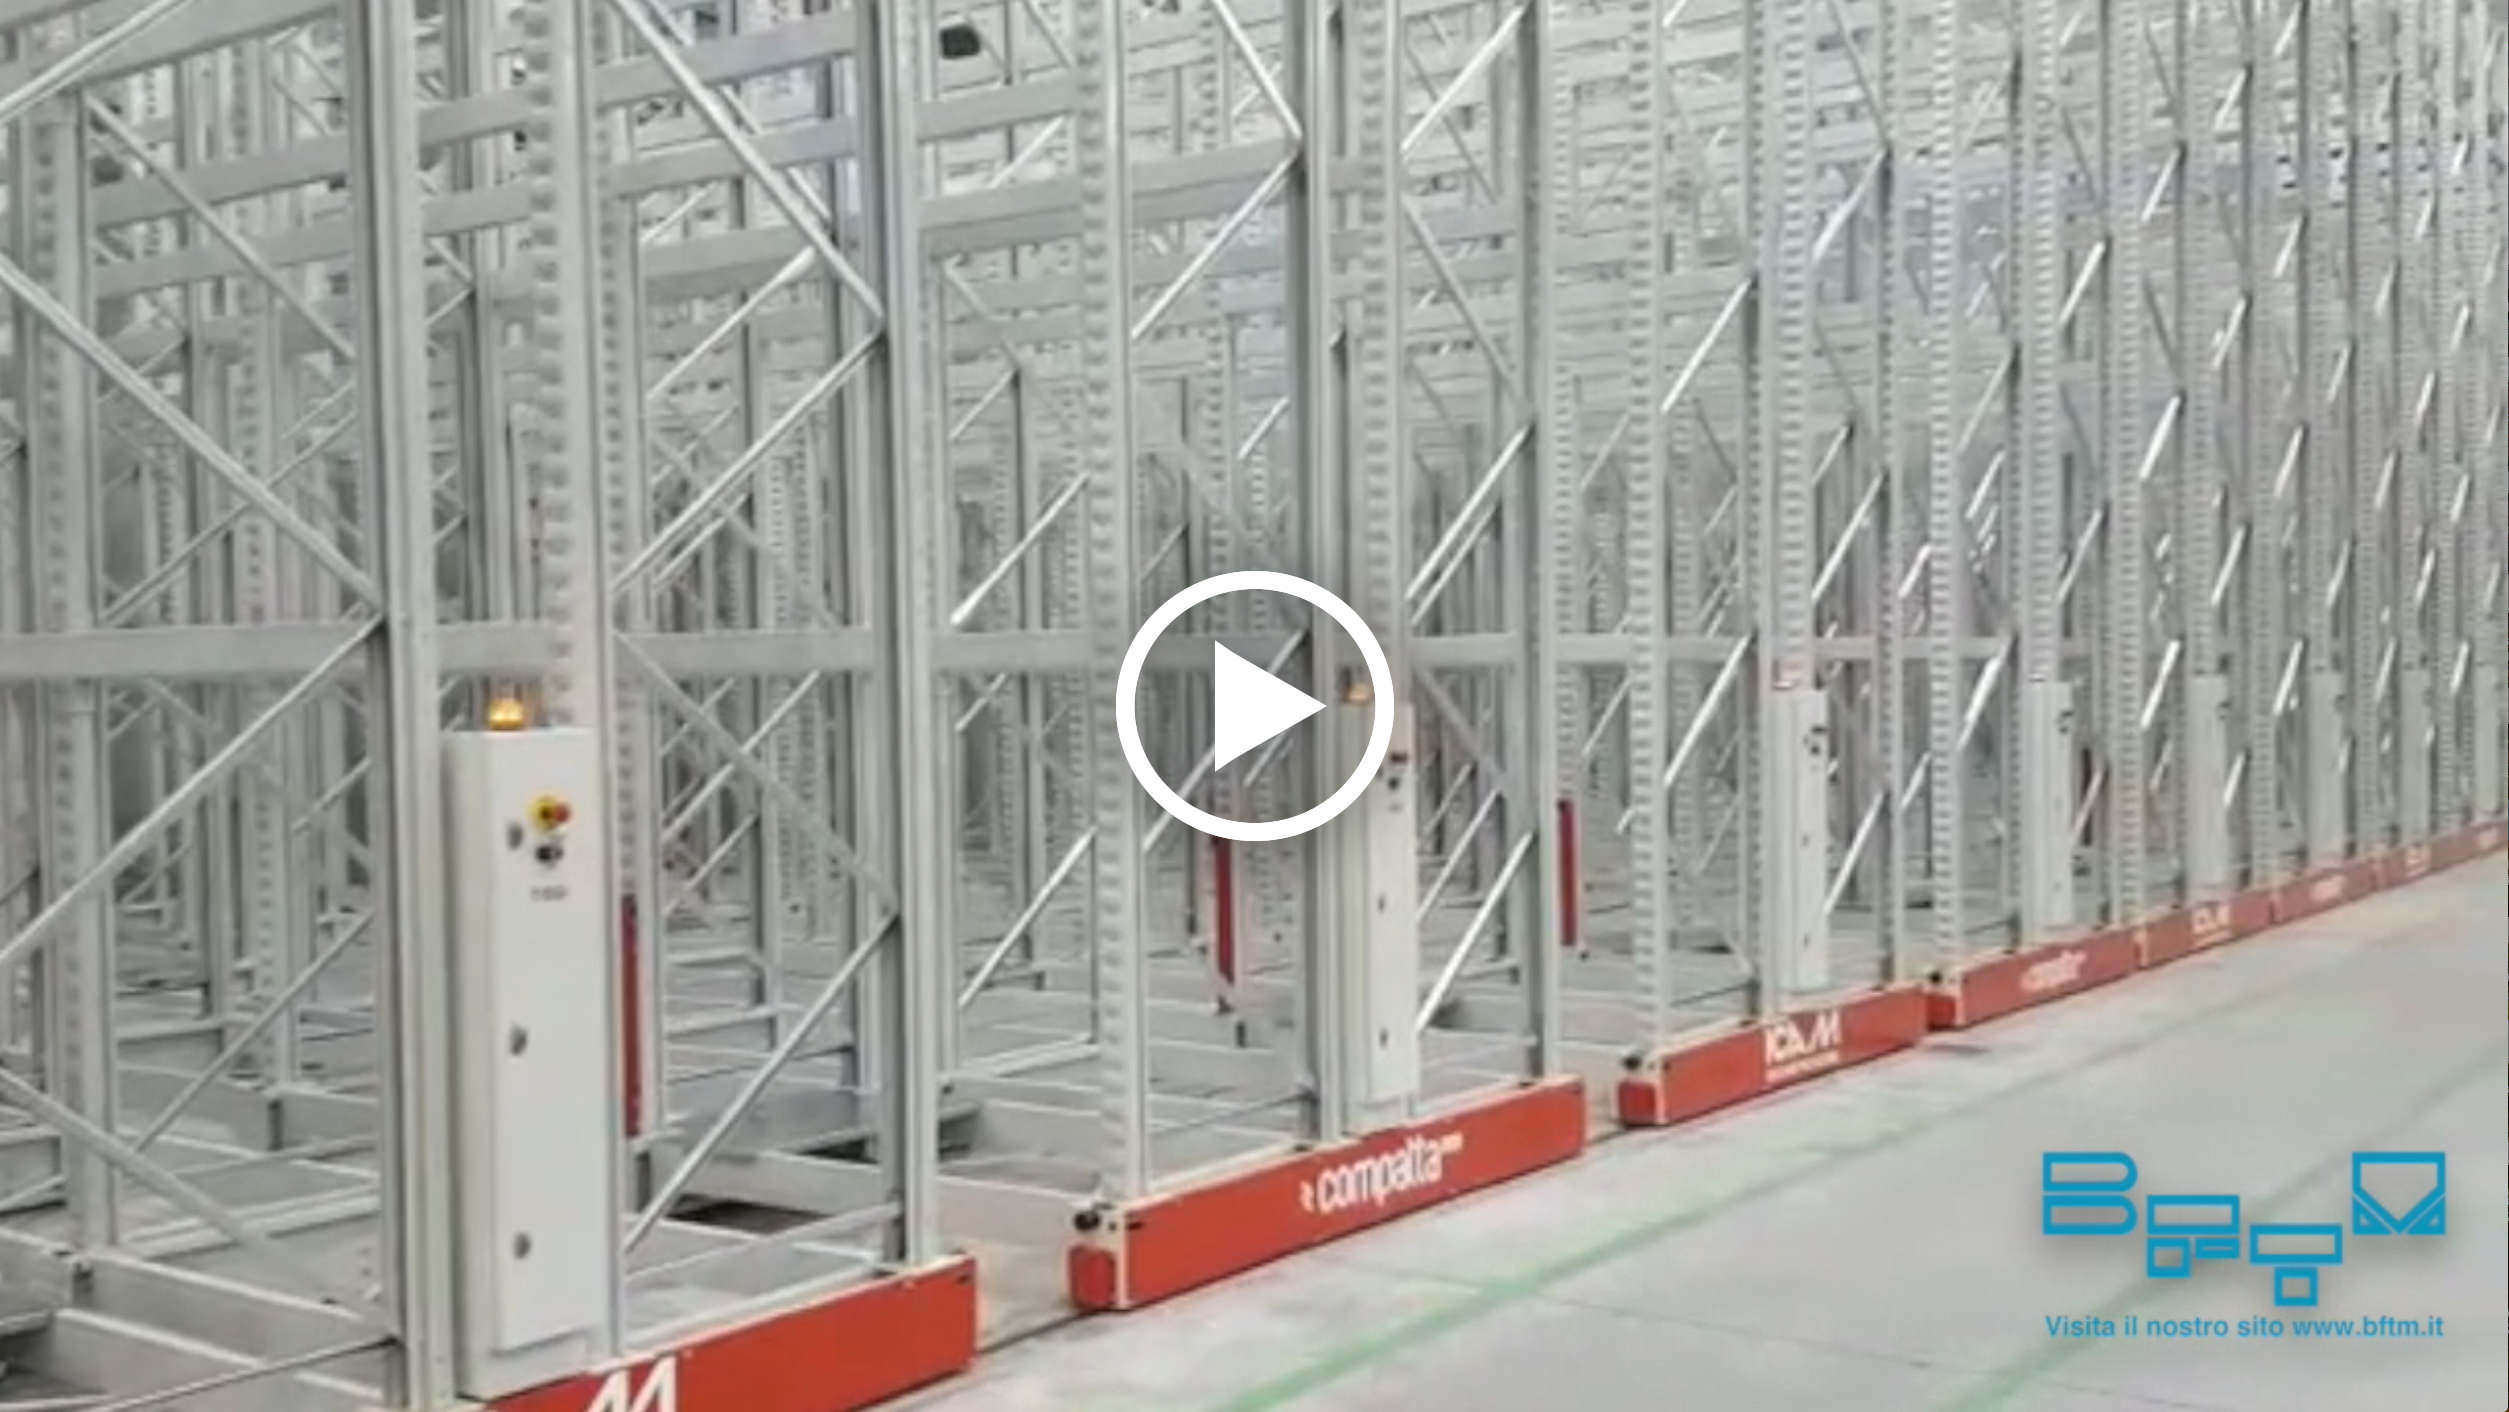 BFTM manufactures an important mobile racking system